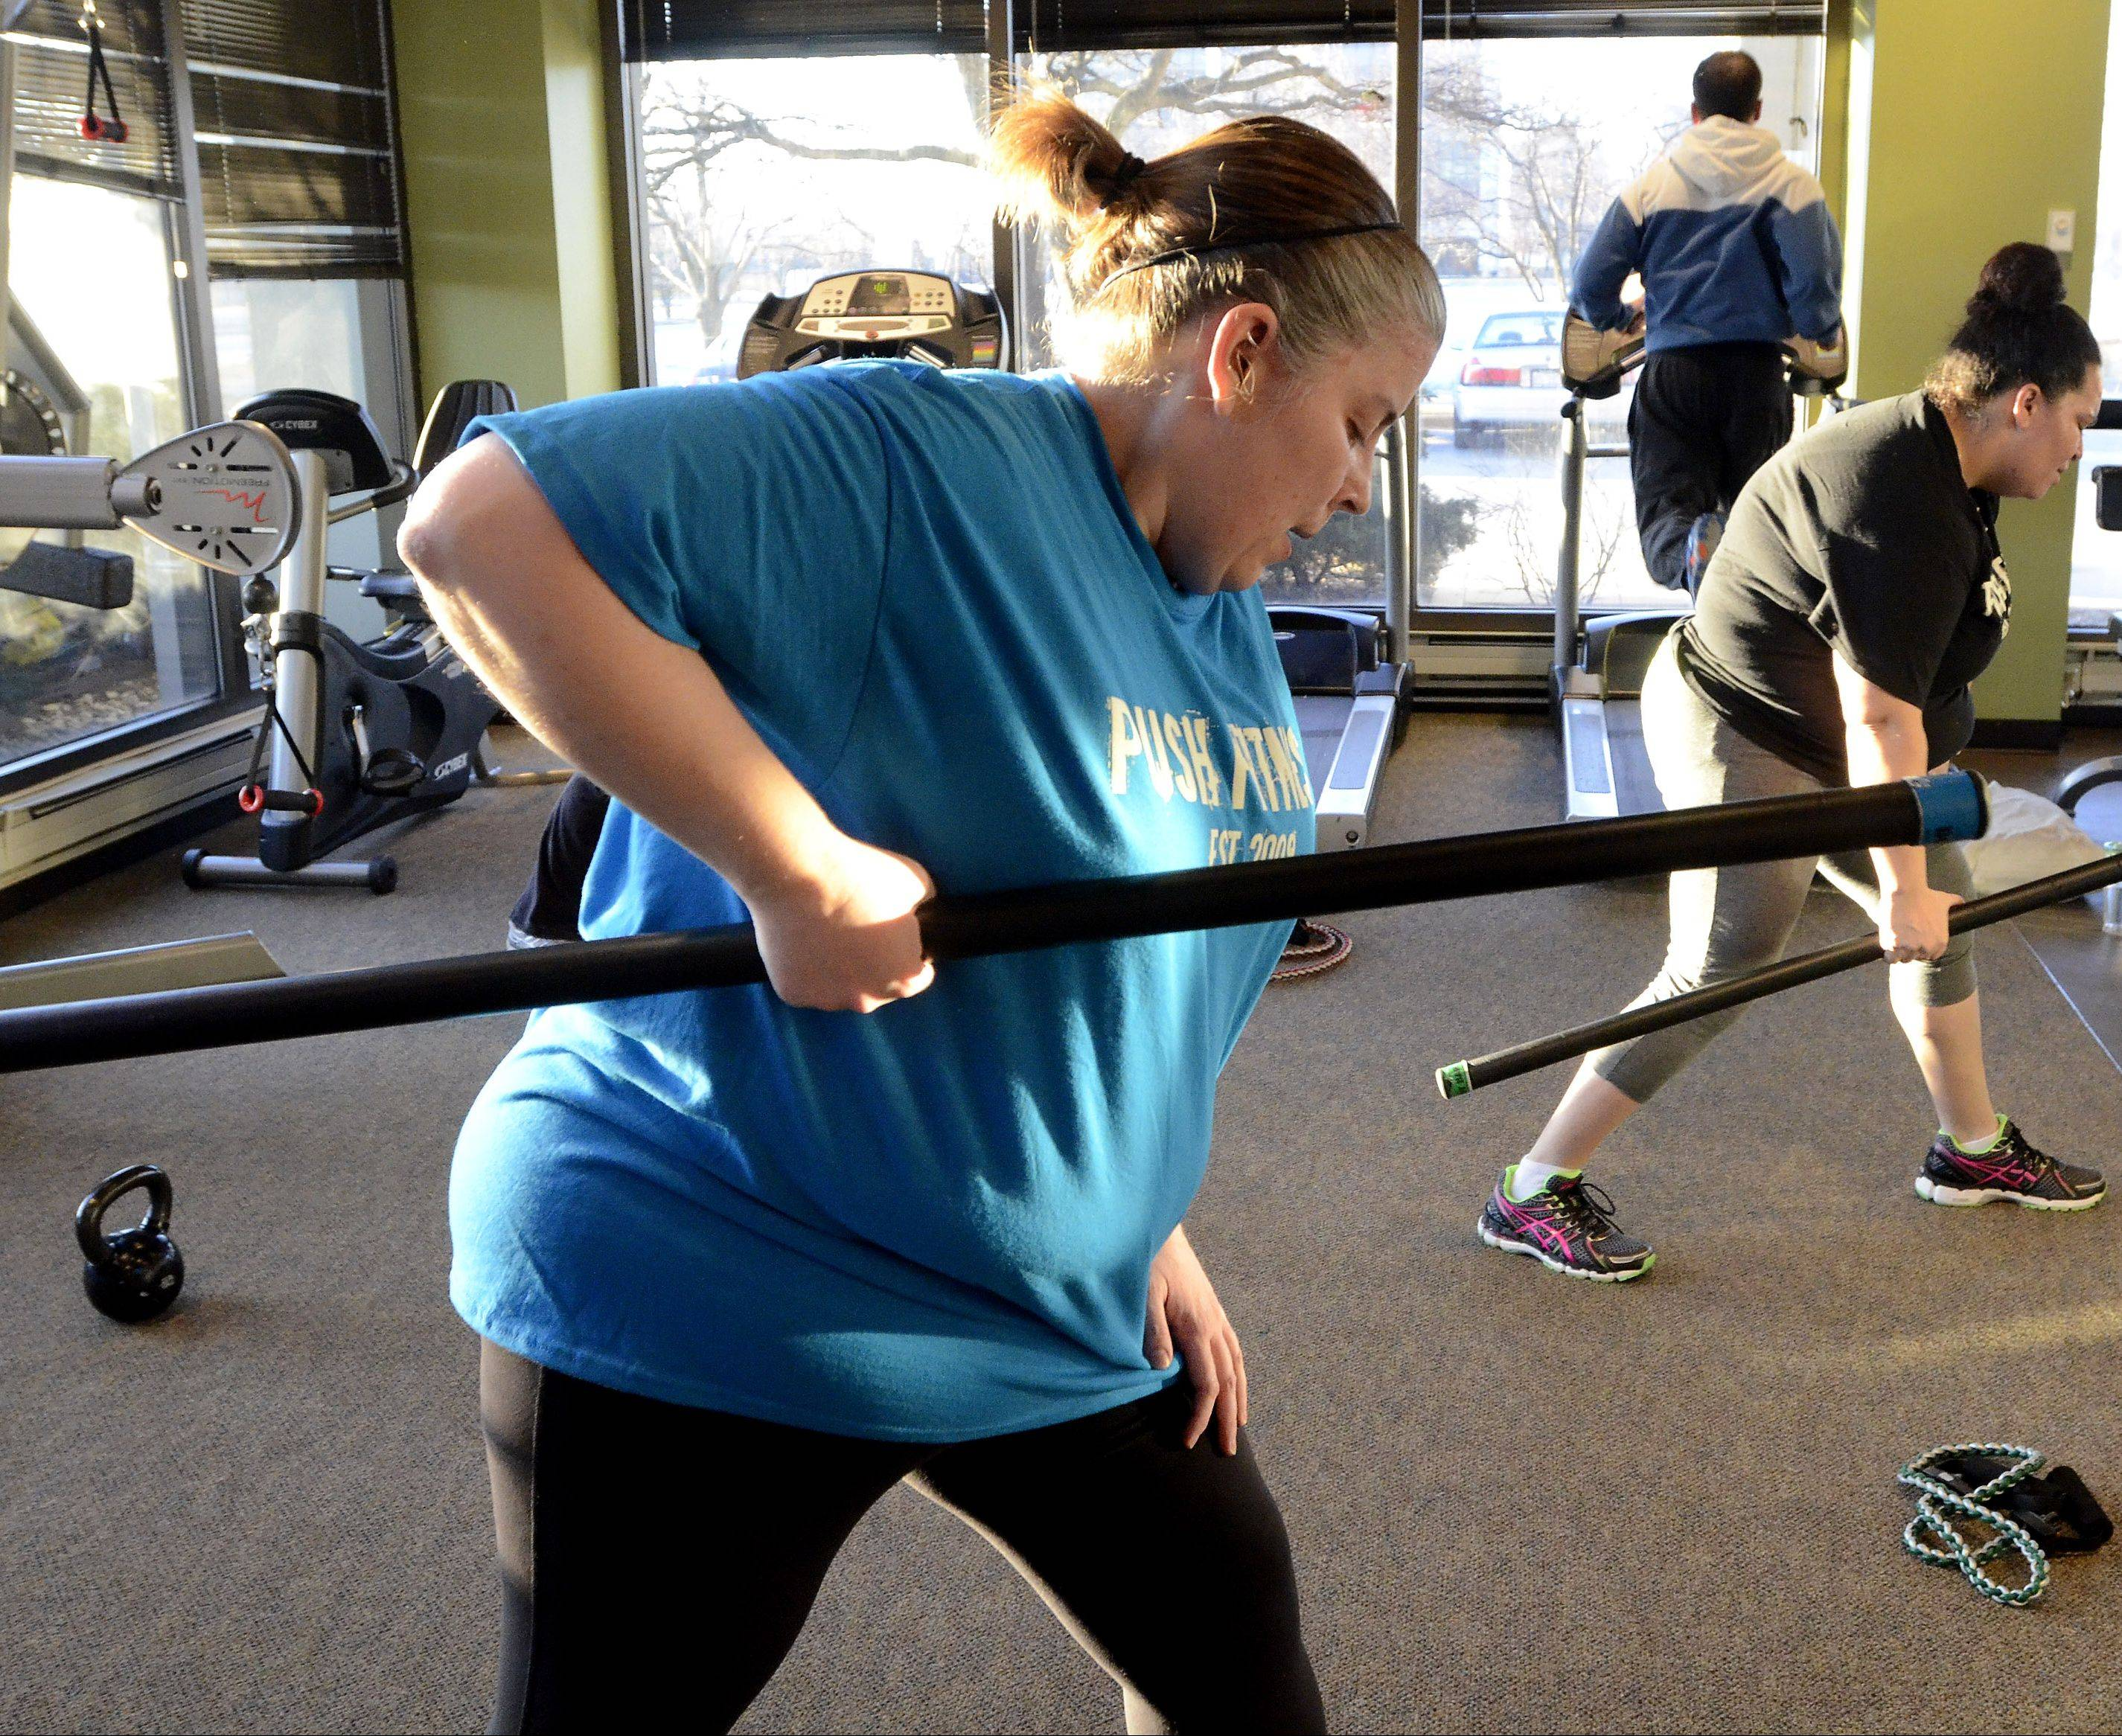 That's me, working out with a weighted bar during the Fittest Loser boot camp at Push Fitness.